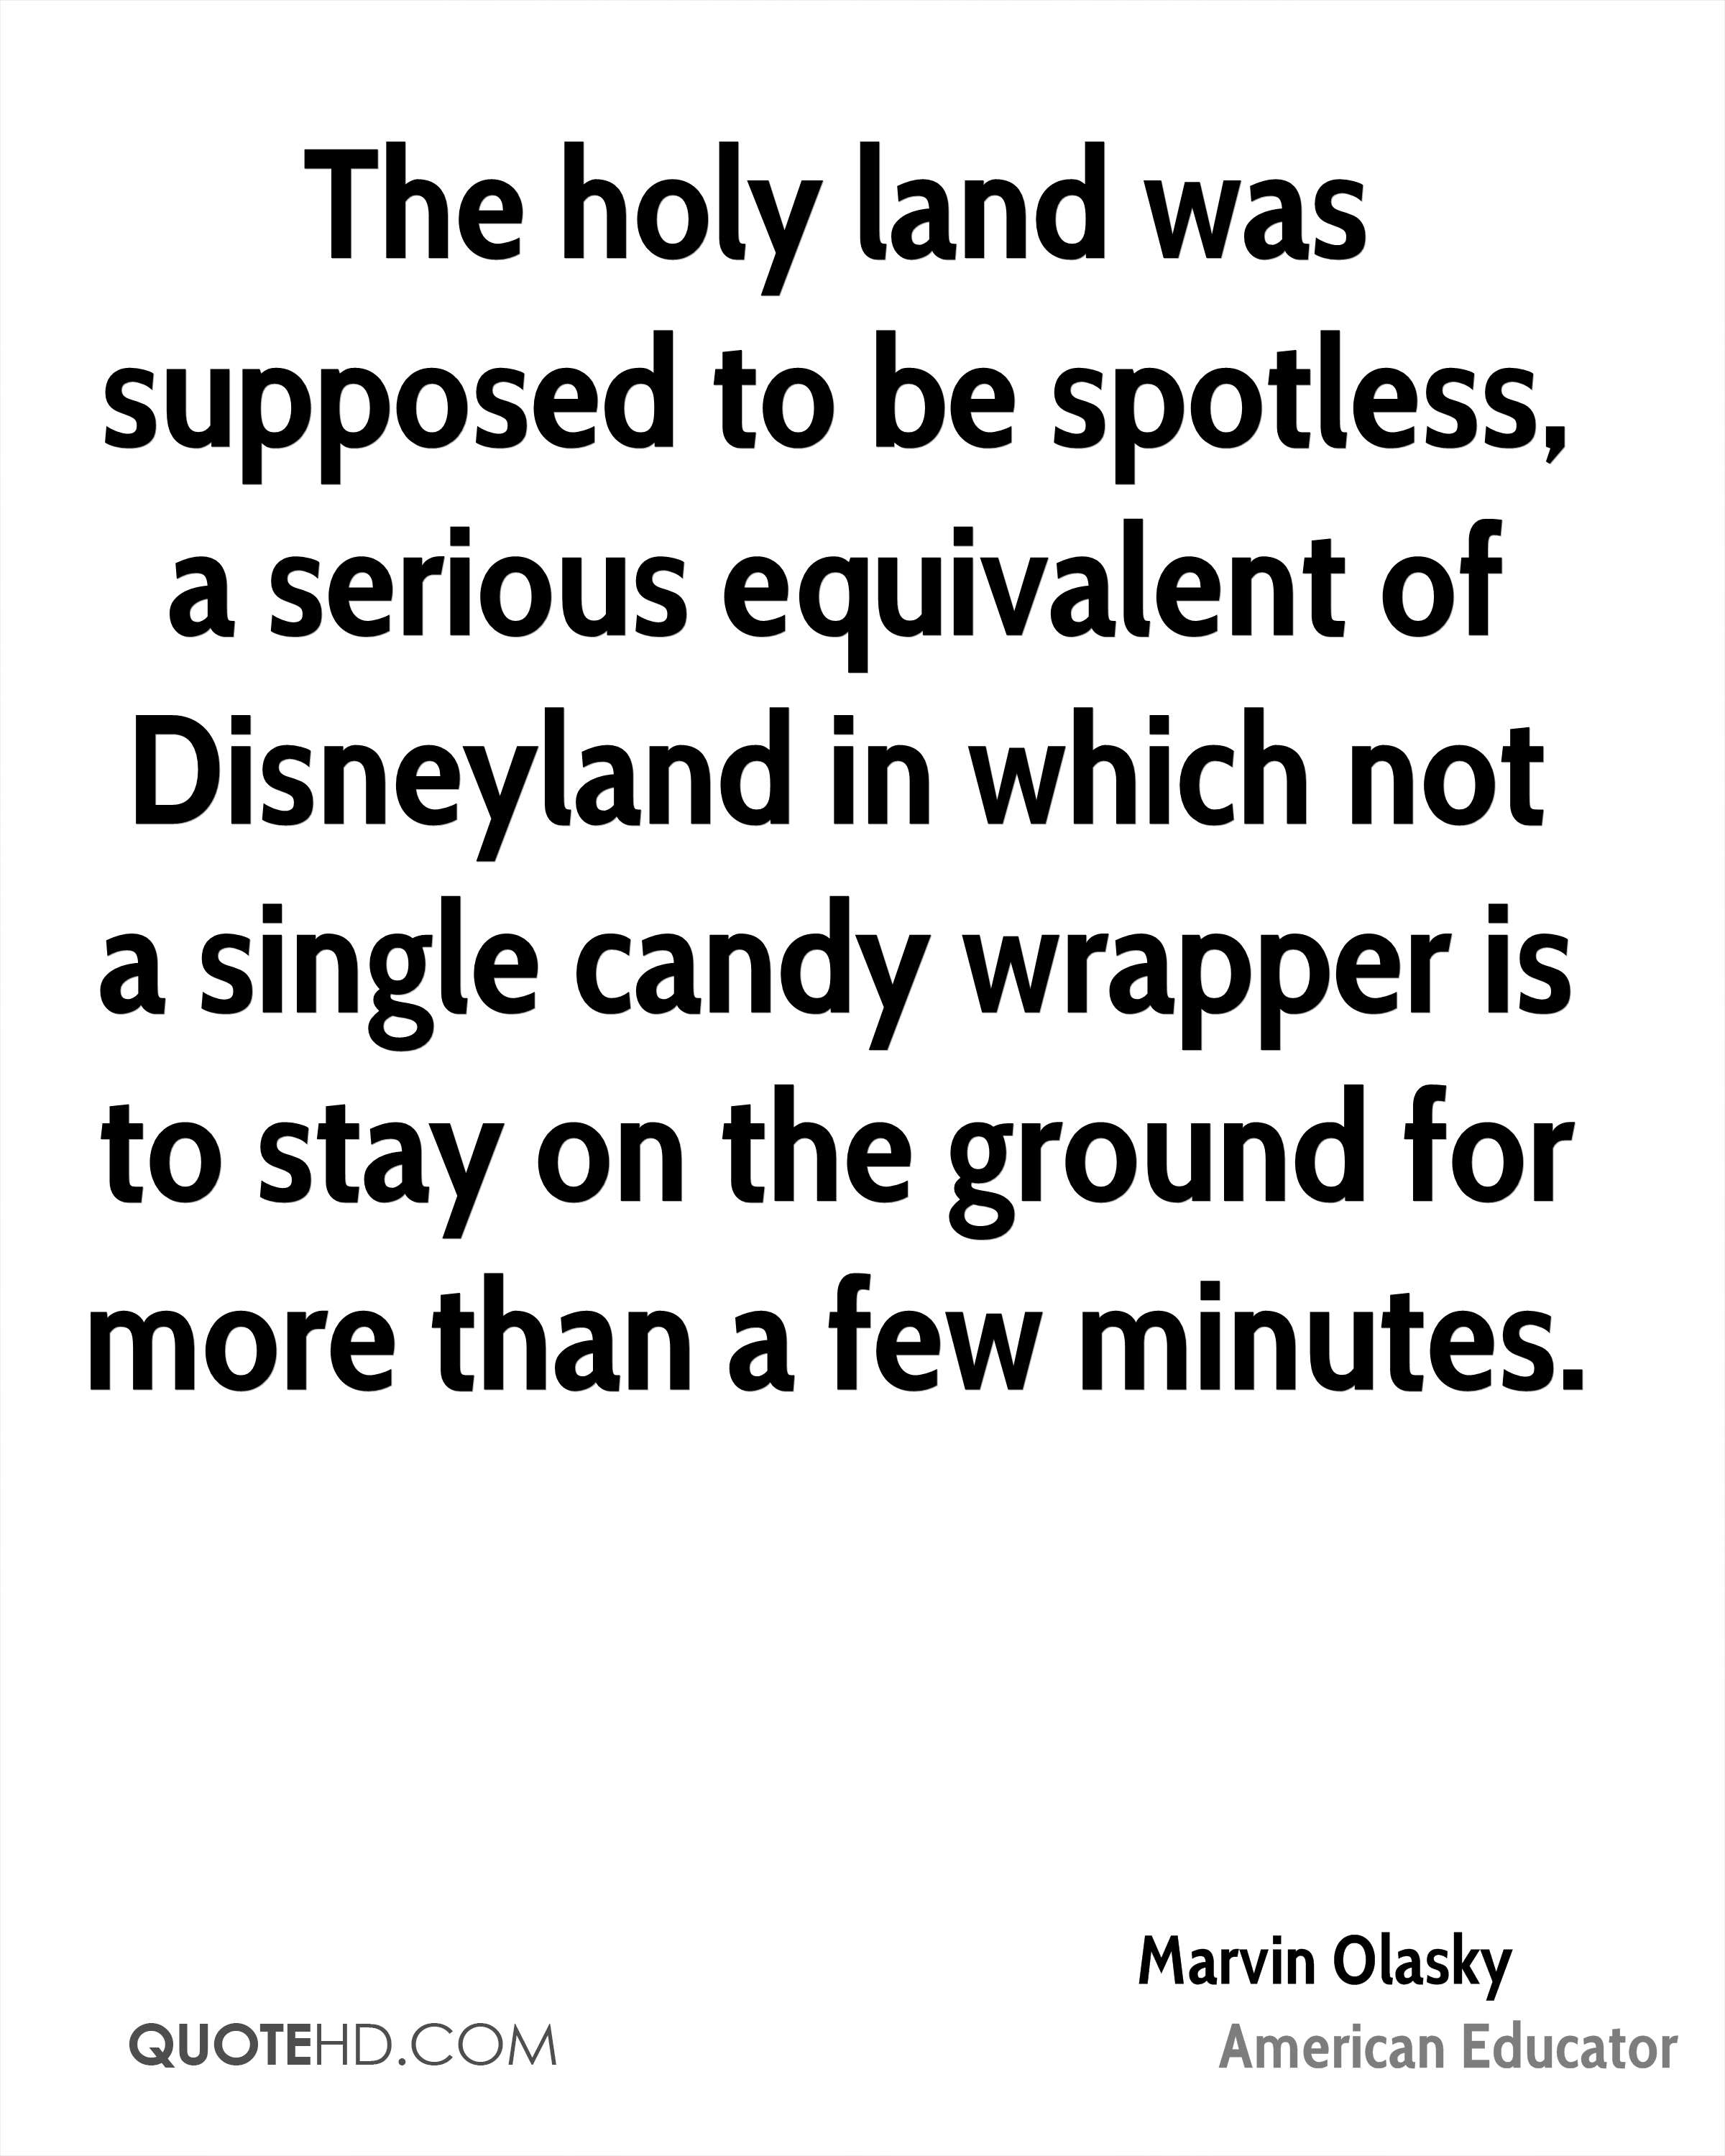 The holy land was supposed to be spotless, a serious equivalent of Disneyland in which not a single candy wrapper is to stay on the ground for more than a few minutes.